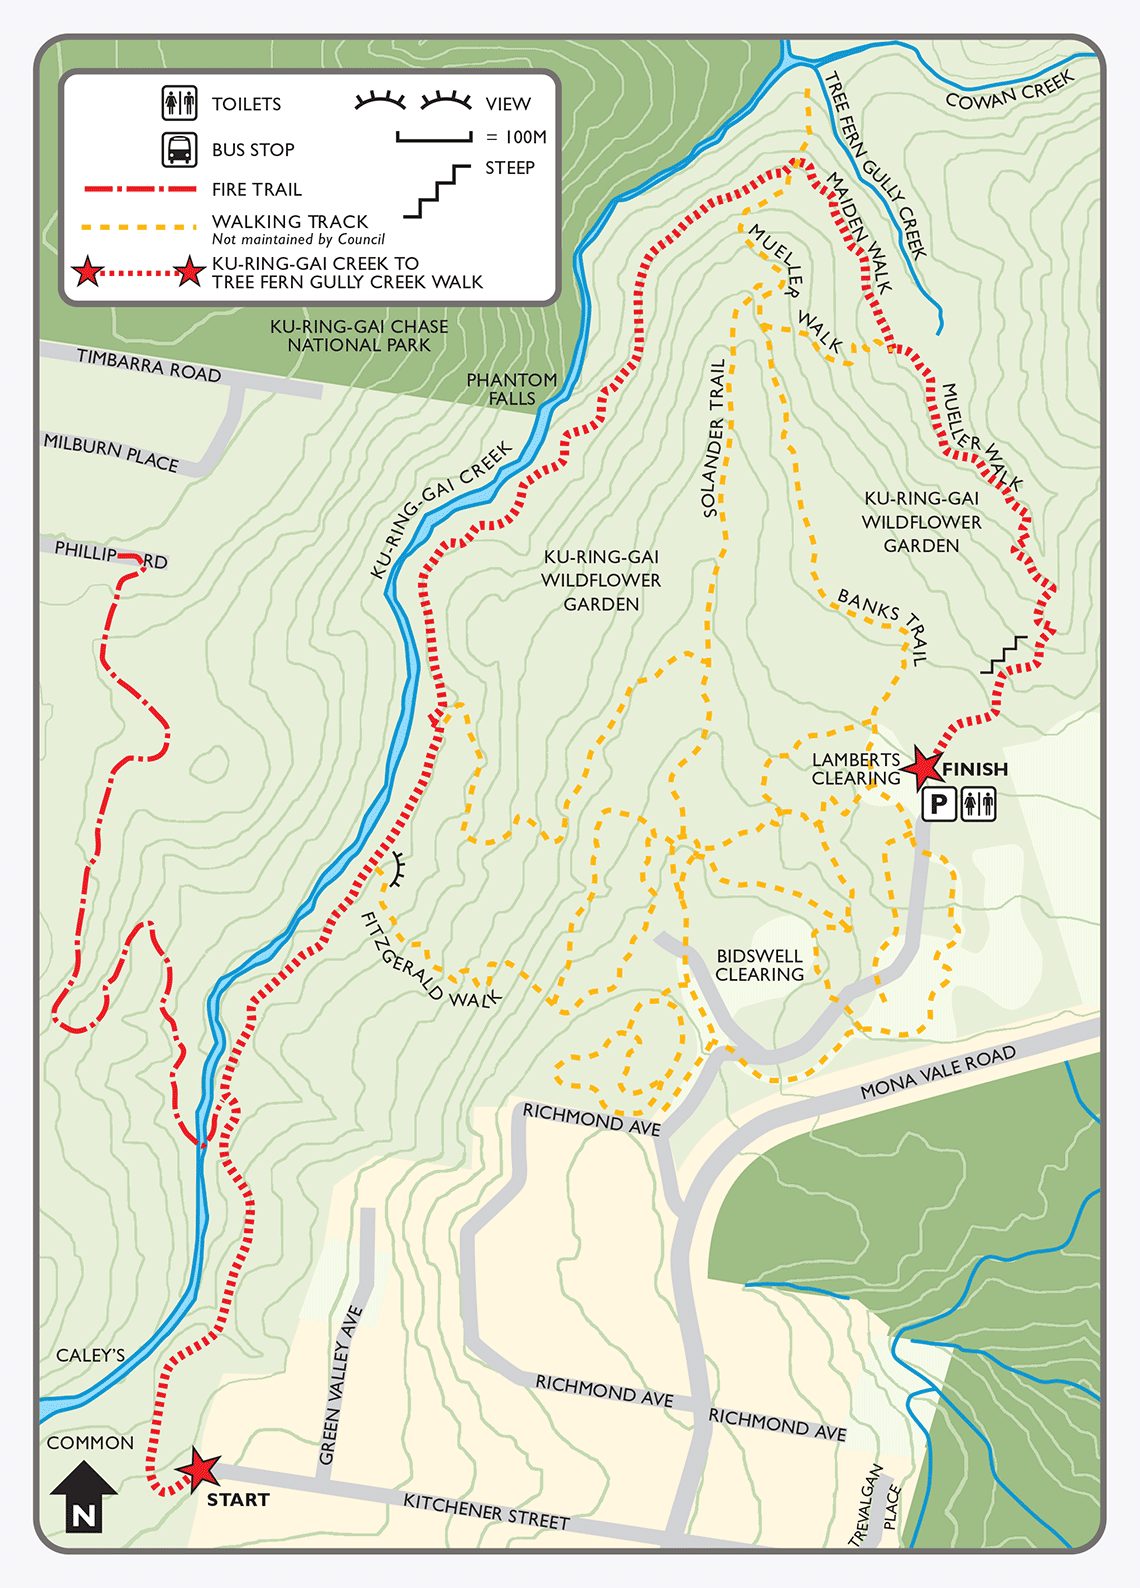 Ku-ring-gai Creek to Tree Fern Gully Creek Track map